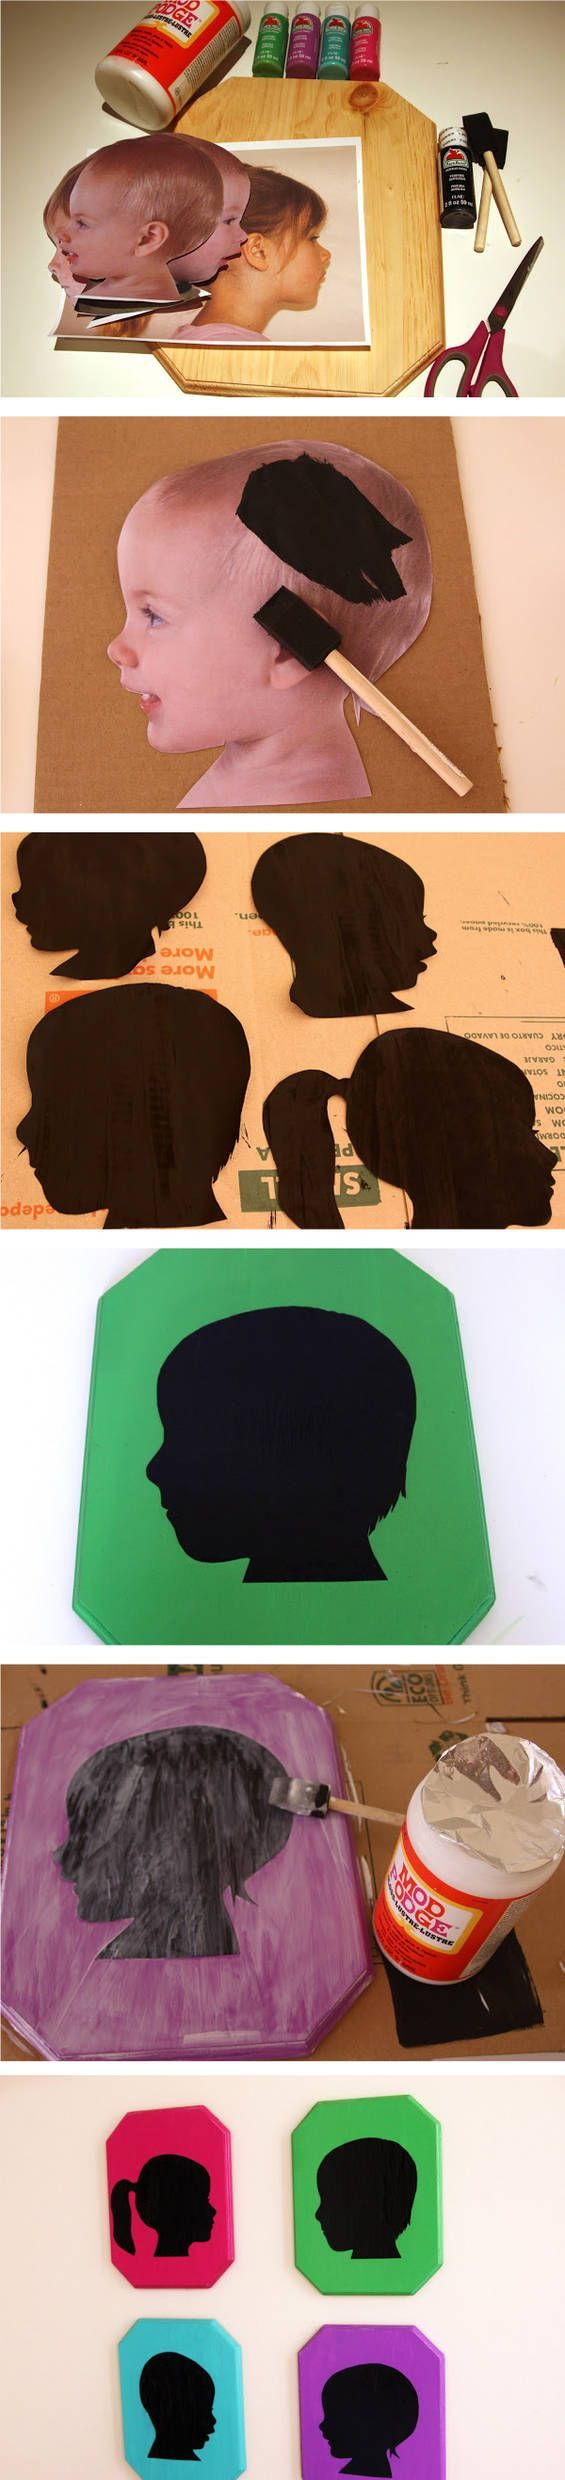 This is such a clever way to do silhouettes! Would be such a fun class project…